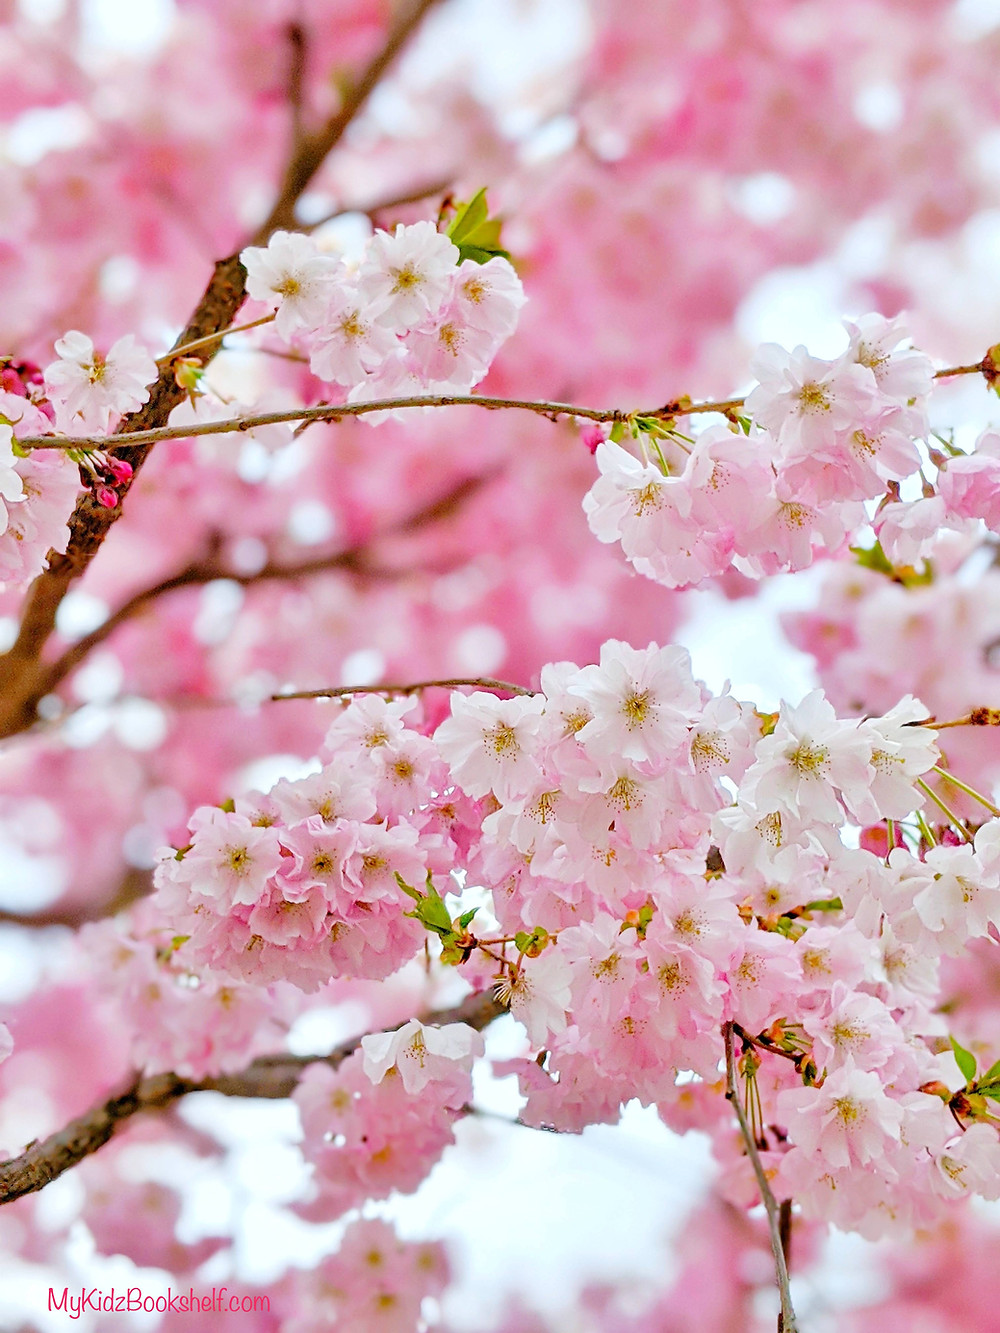 pink cherry blossoms on a tree branch